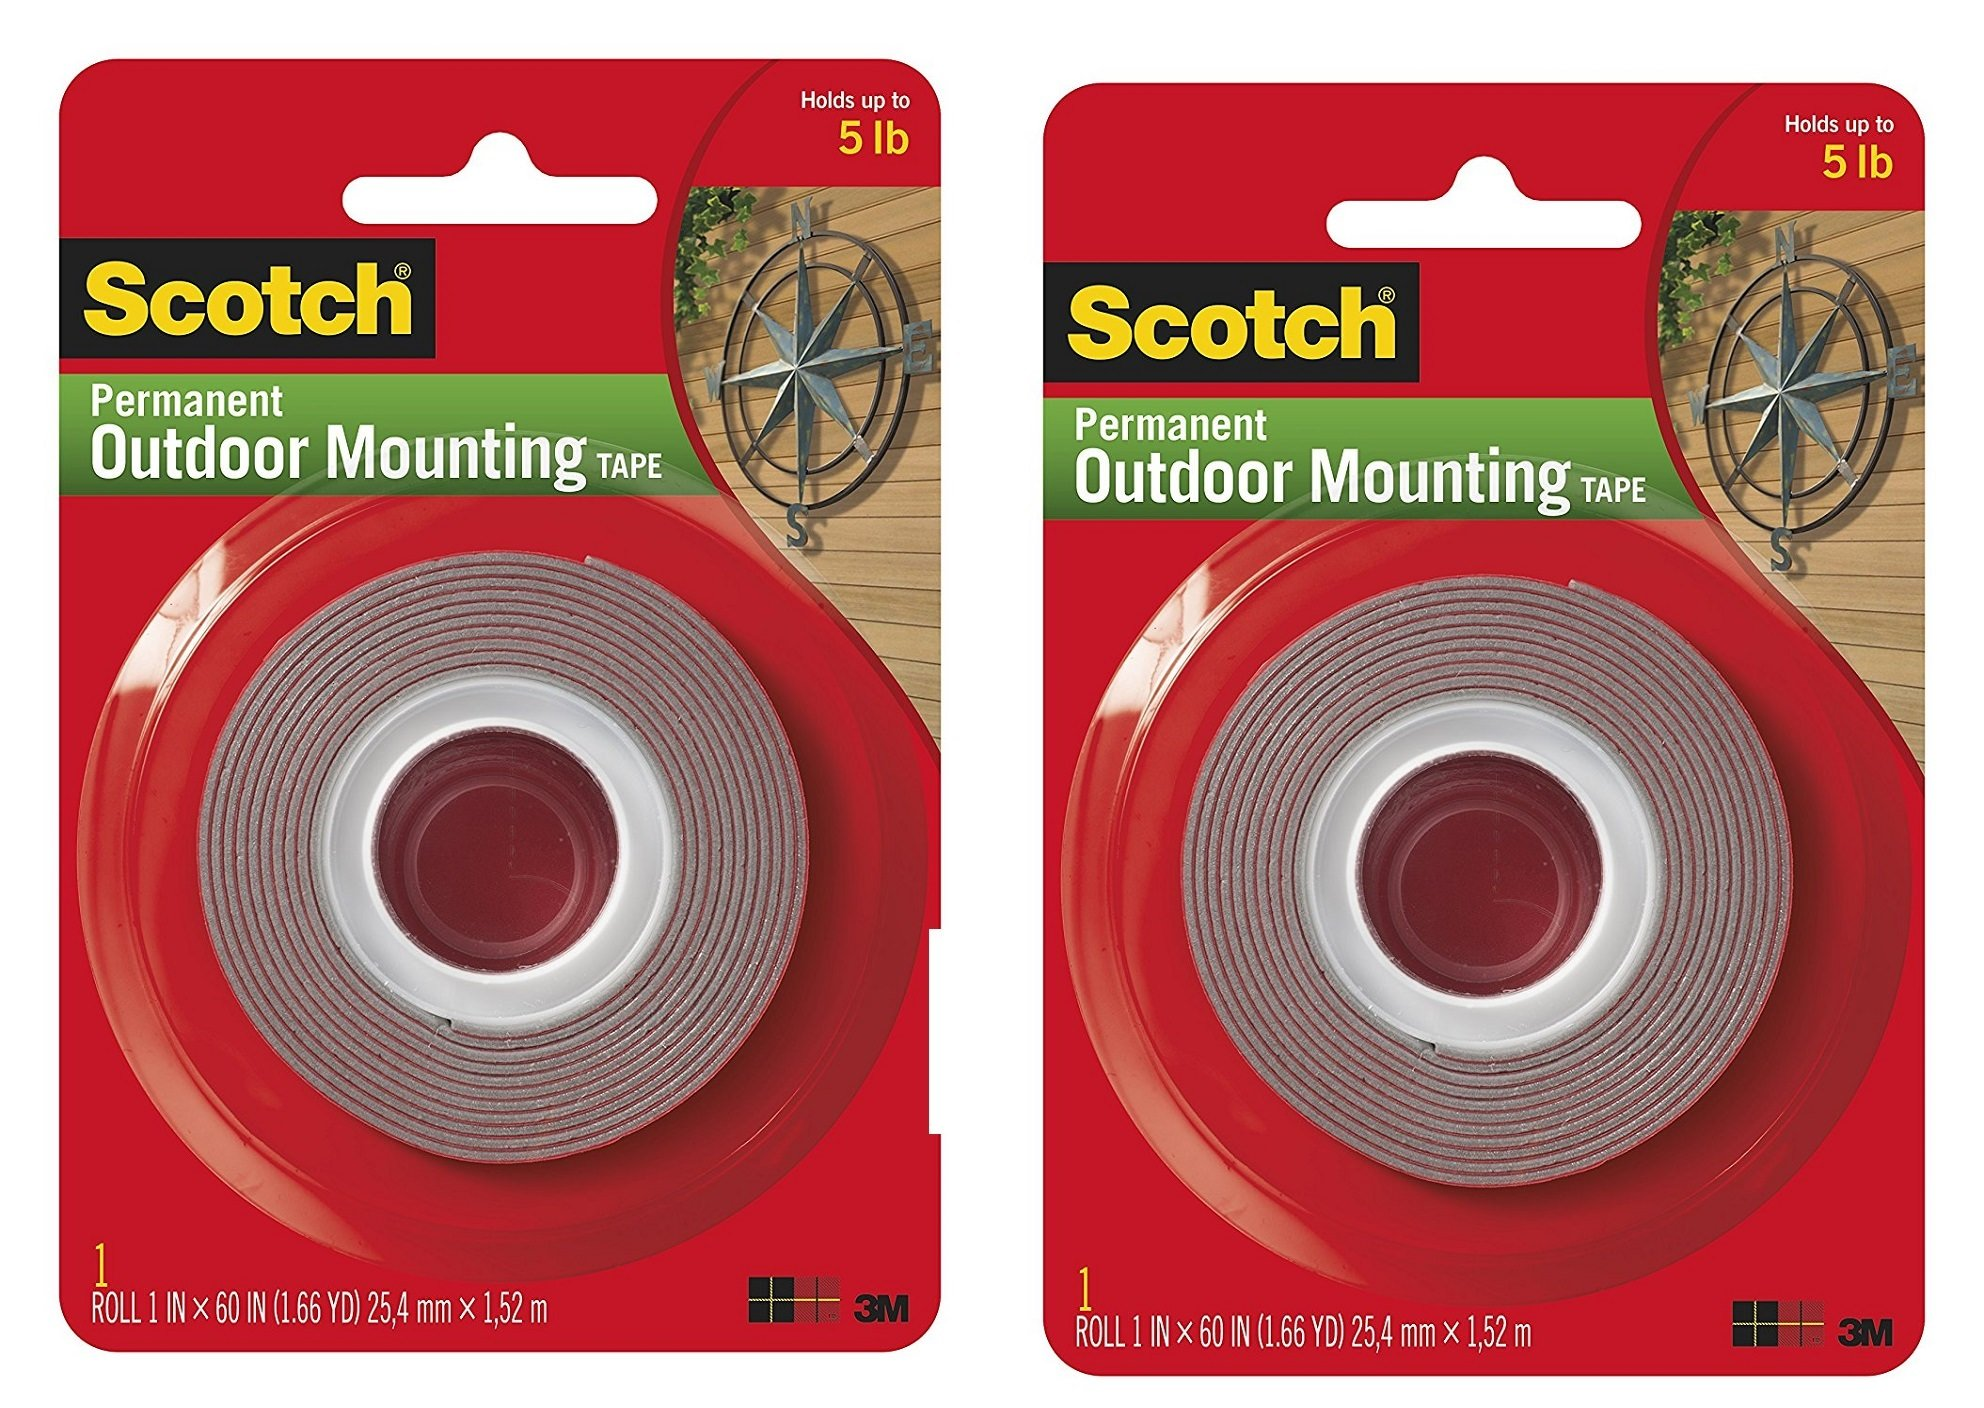 3M Scotch 4011 Exterior Mounting Tape, 1 in x 60 in, 2 Tape roll